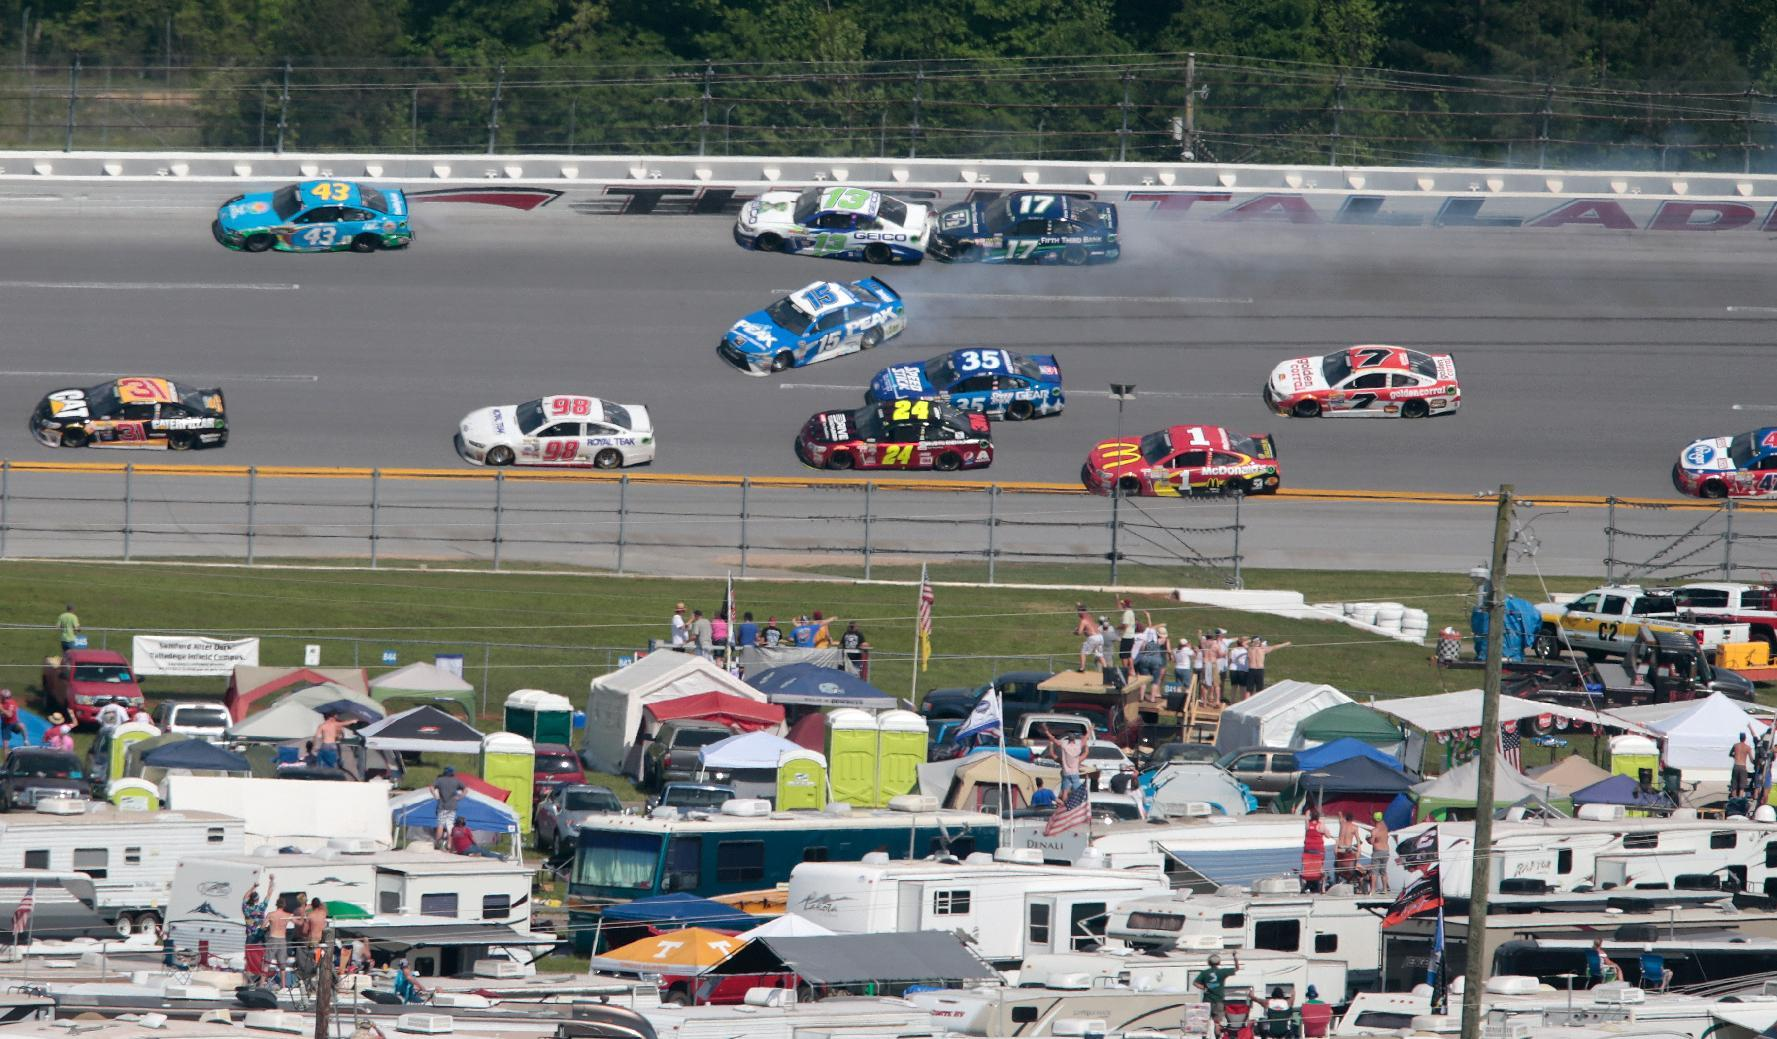 Edwards and Kenseth question lack of caution at end of race